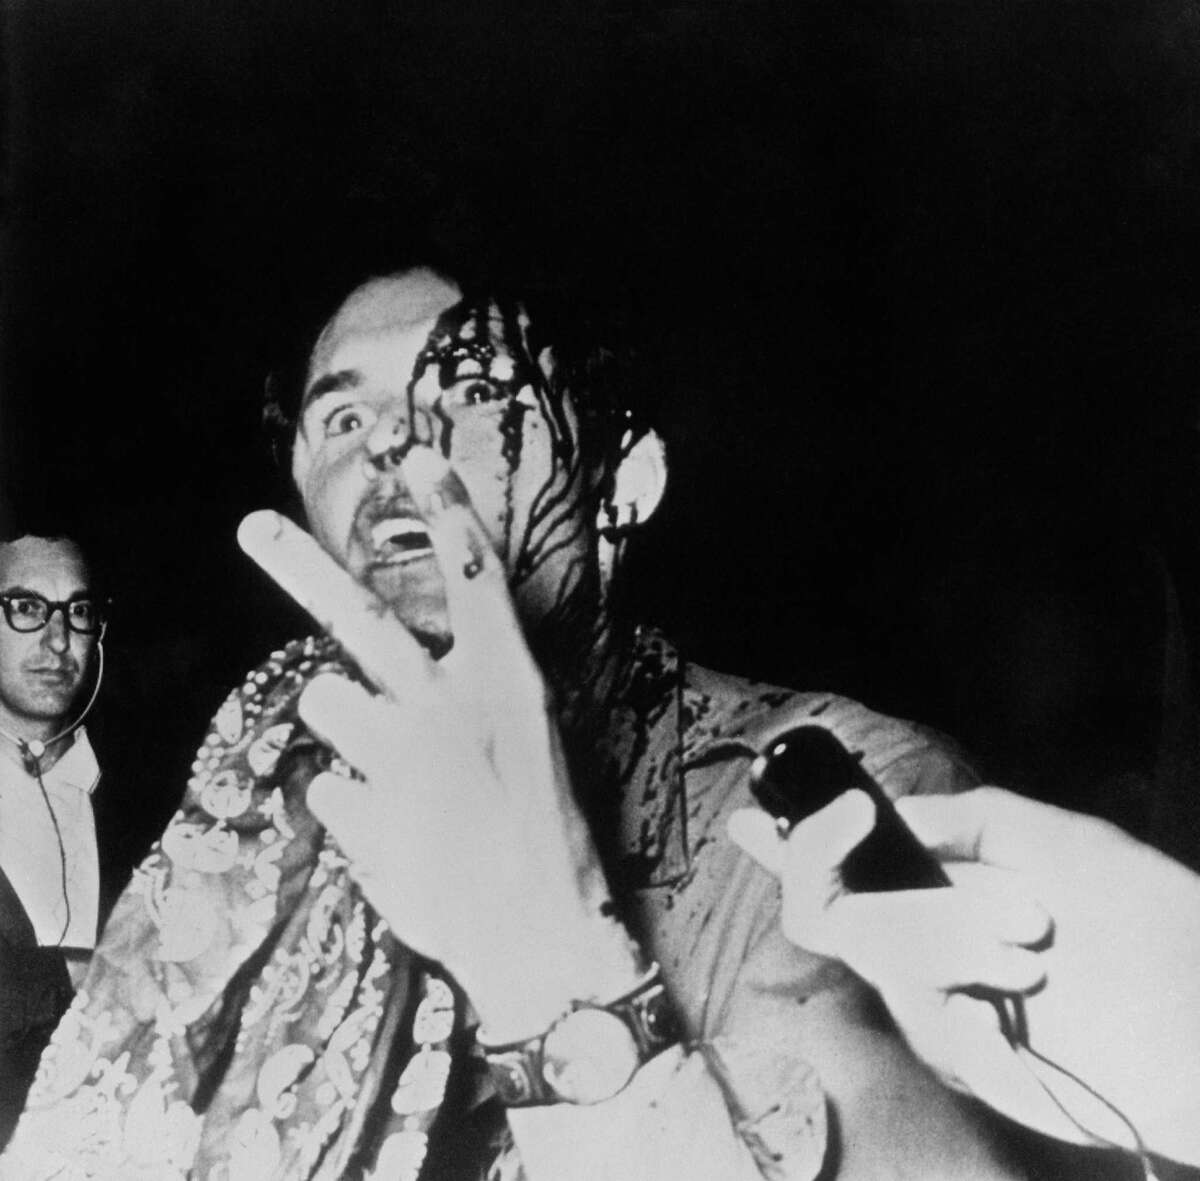 A photgrapher bleeding from a head wound given to him by police during the riots in Grant Park outside the 1968 Democratic National Convention gives the peace sign as he is interviewed in Chicago, Illinois, August 28, 1968. The demonstration, held across the street from Democratic Headquarters hotel, erupted into violence after Chicago police tried to break up the anti-Vietnam War protest.